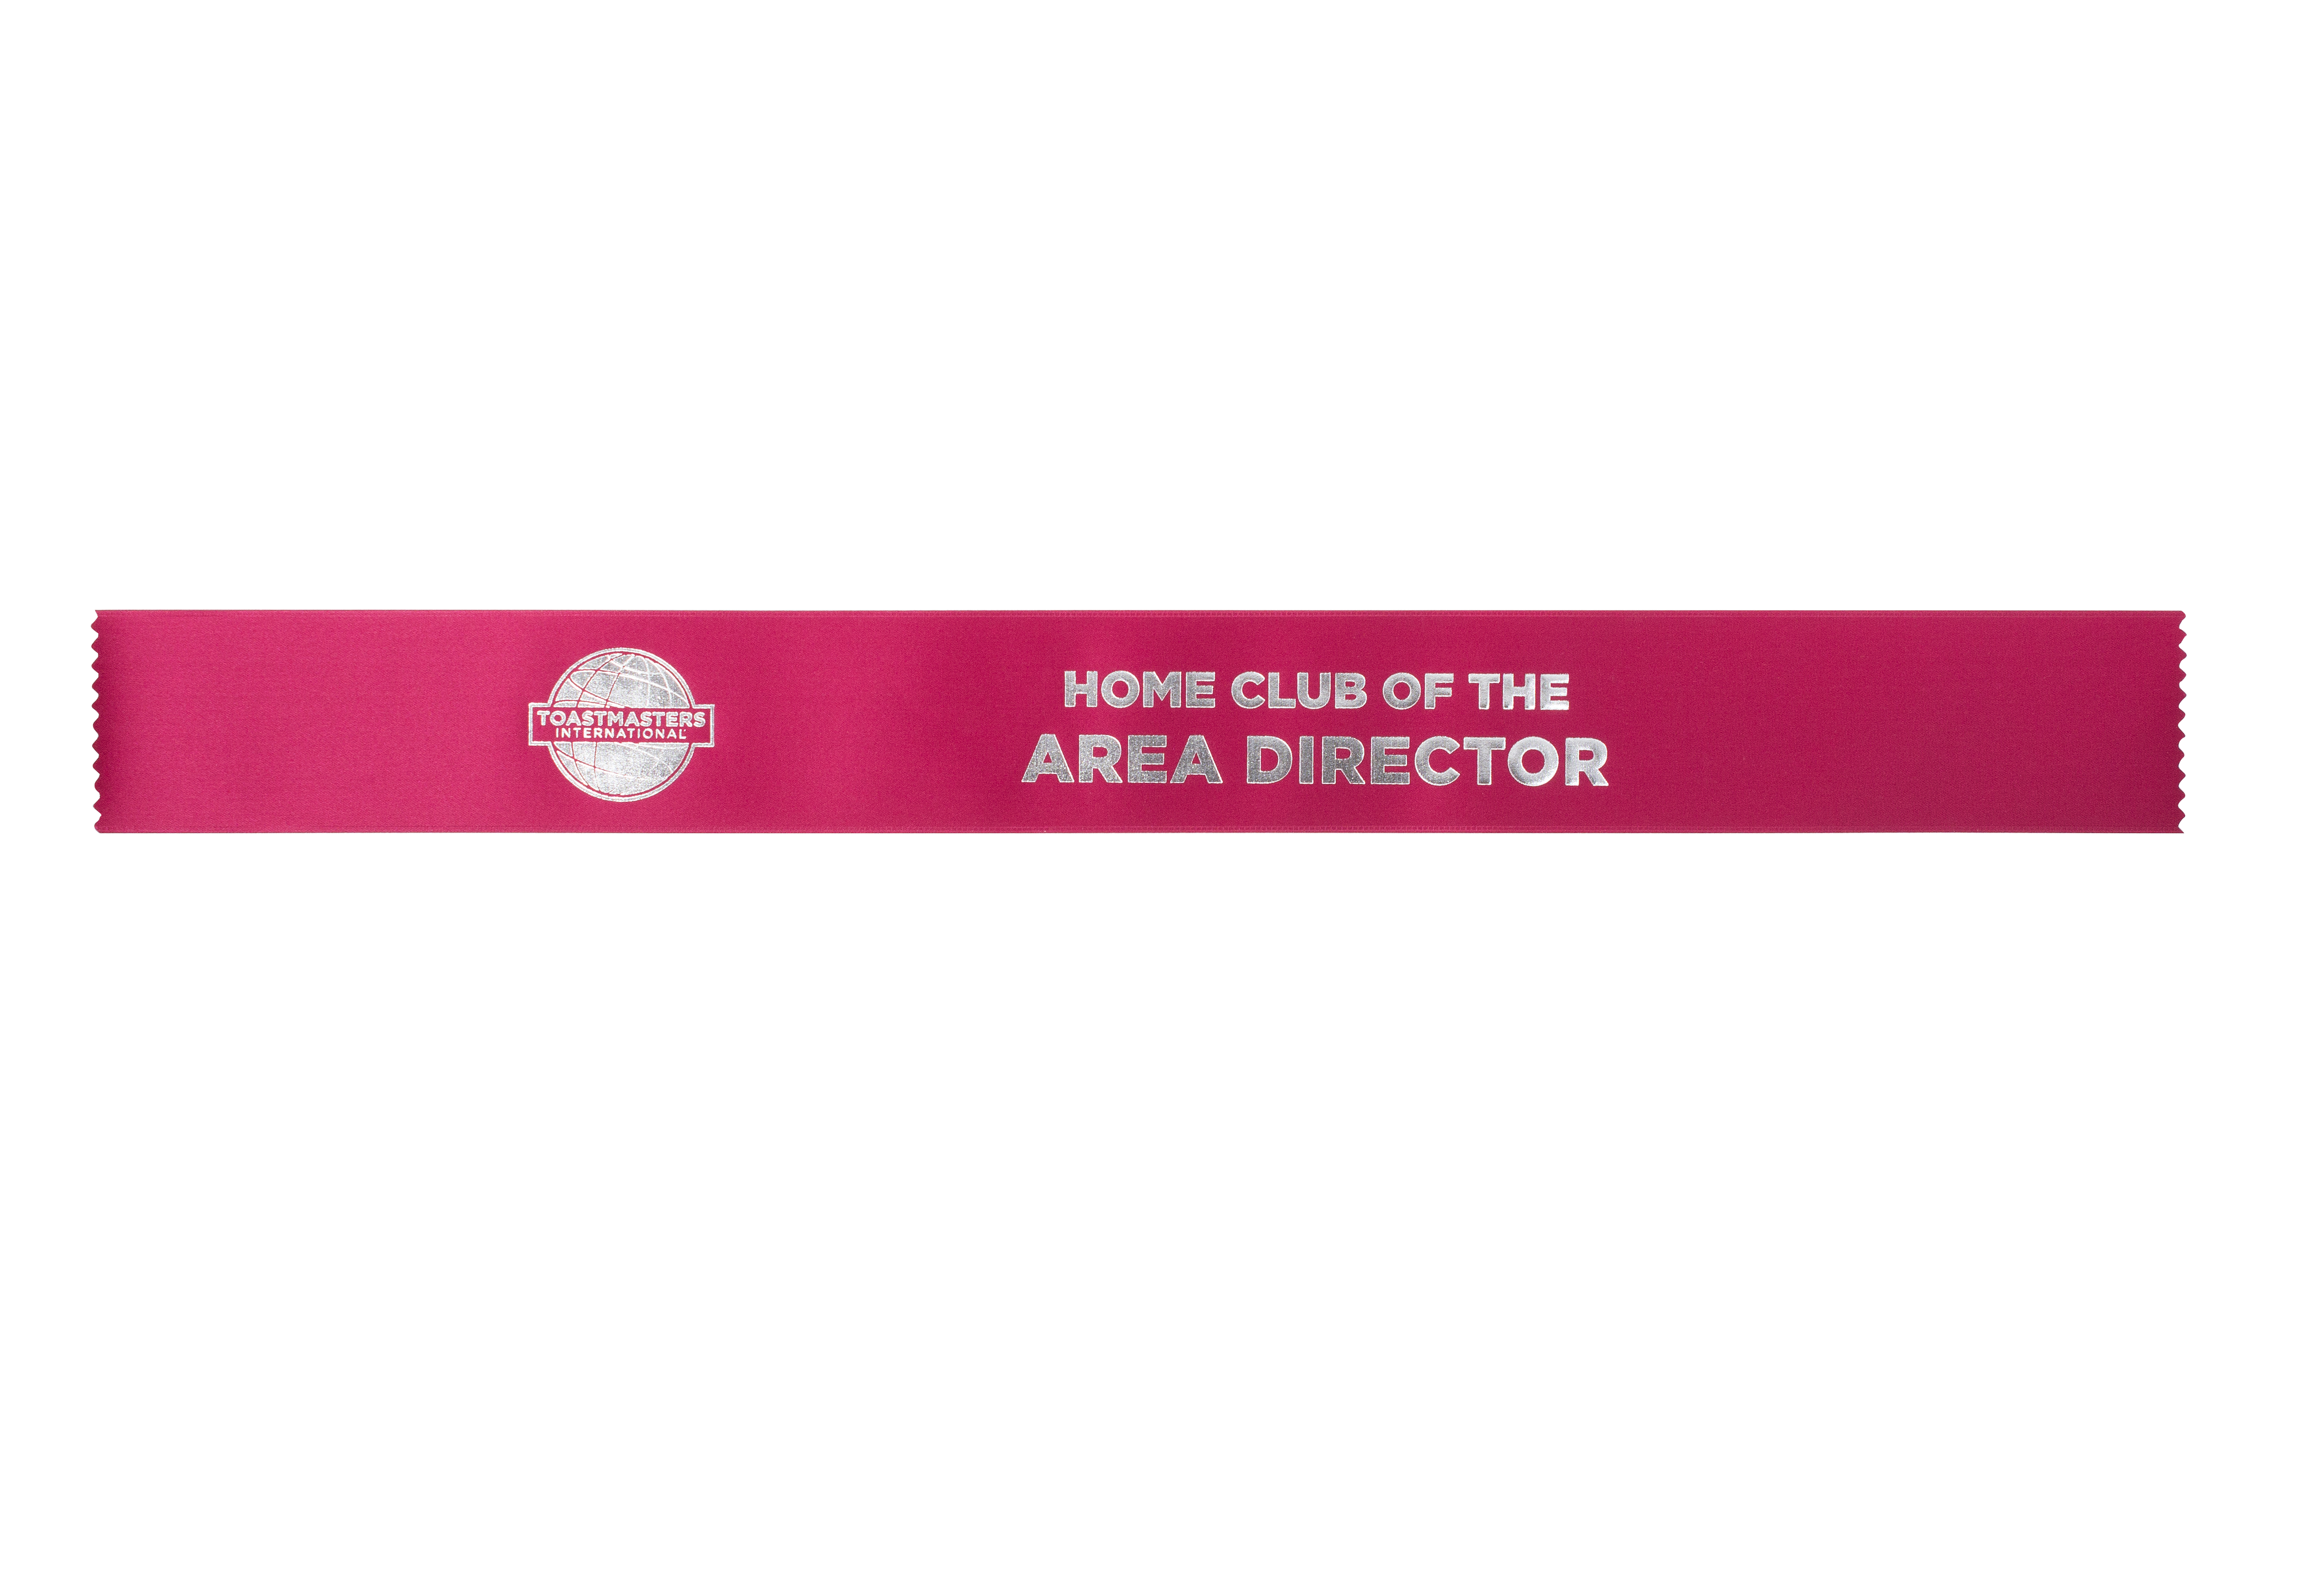 Home Club of the Area Director Ribbon